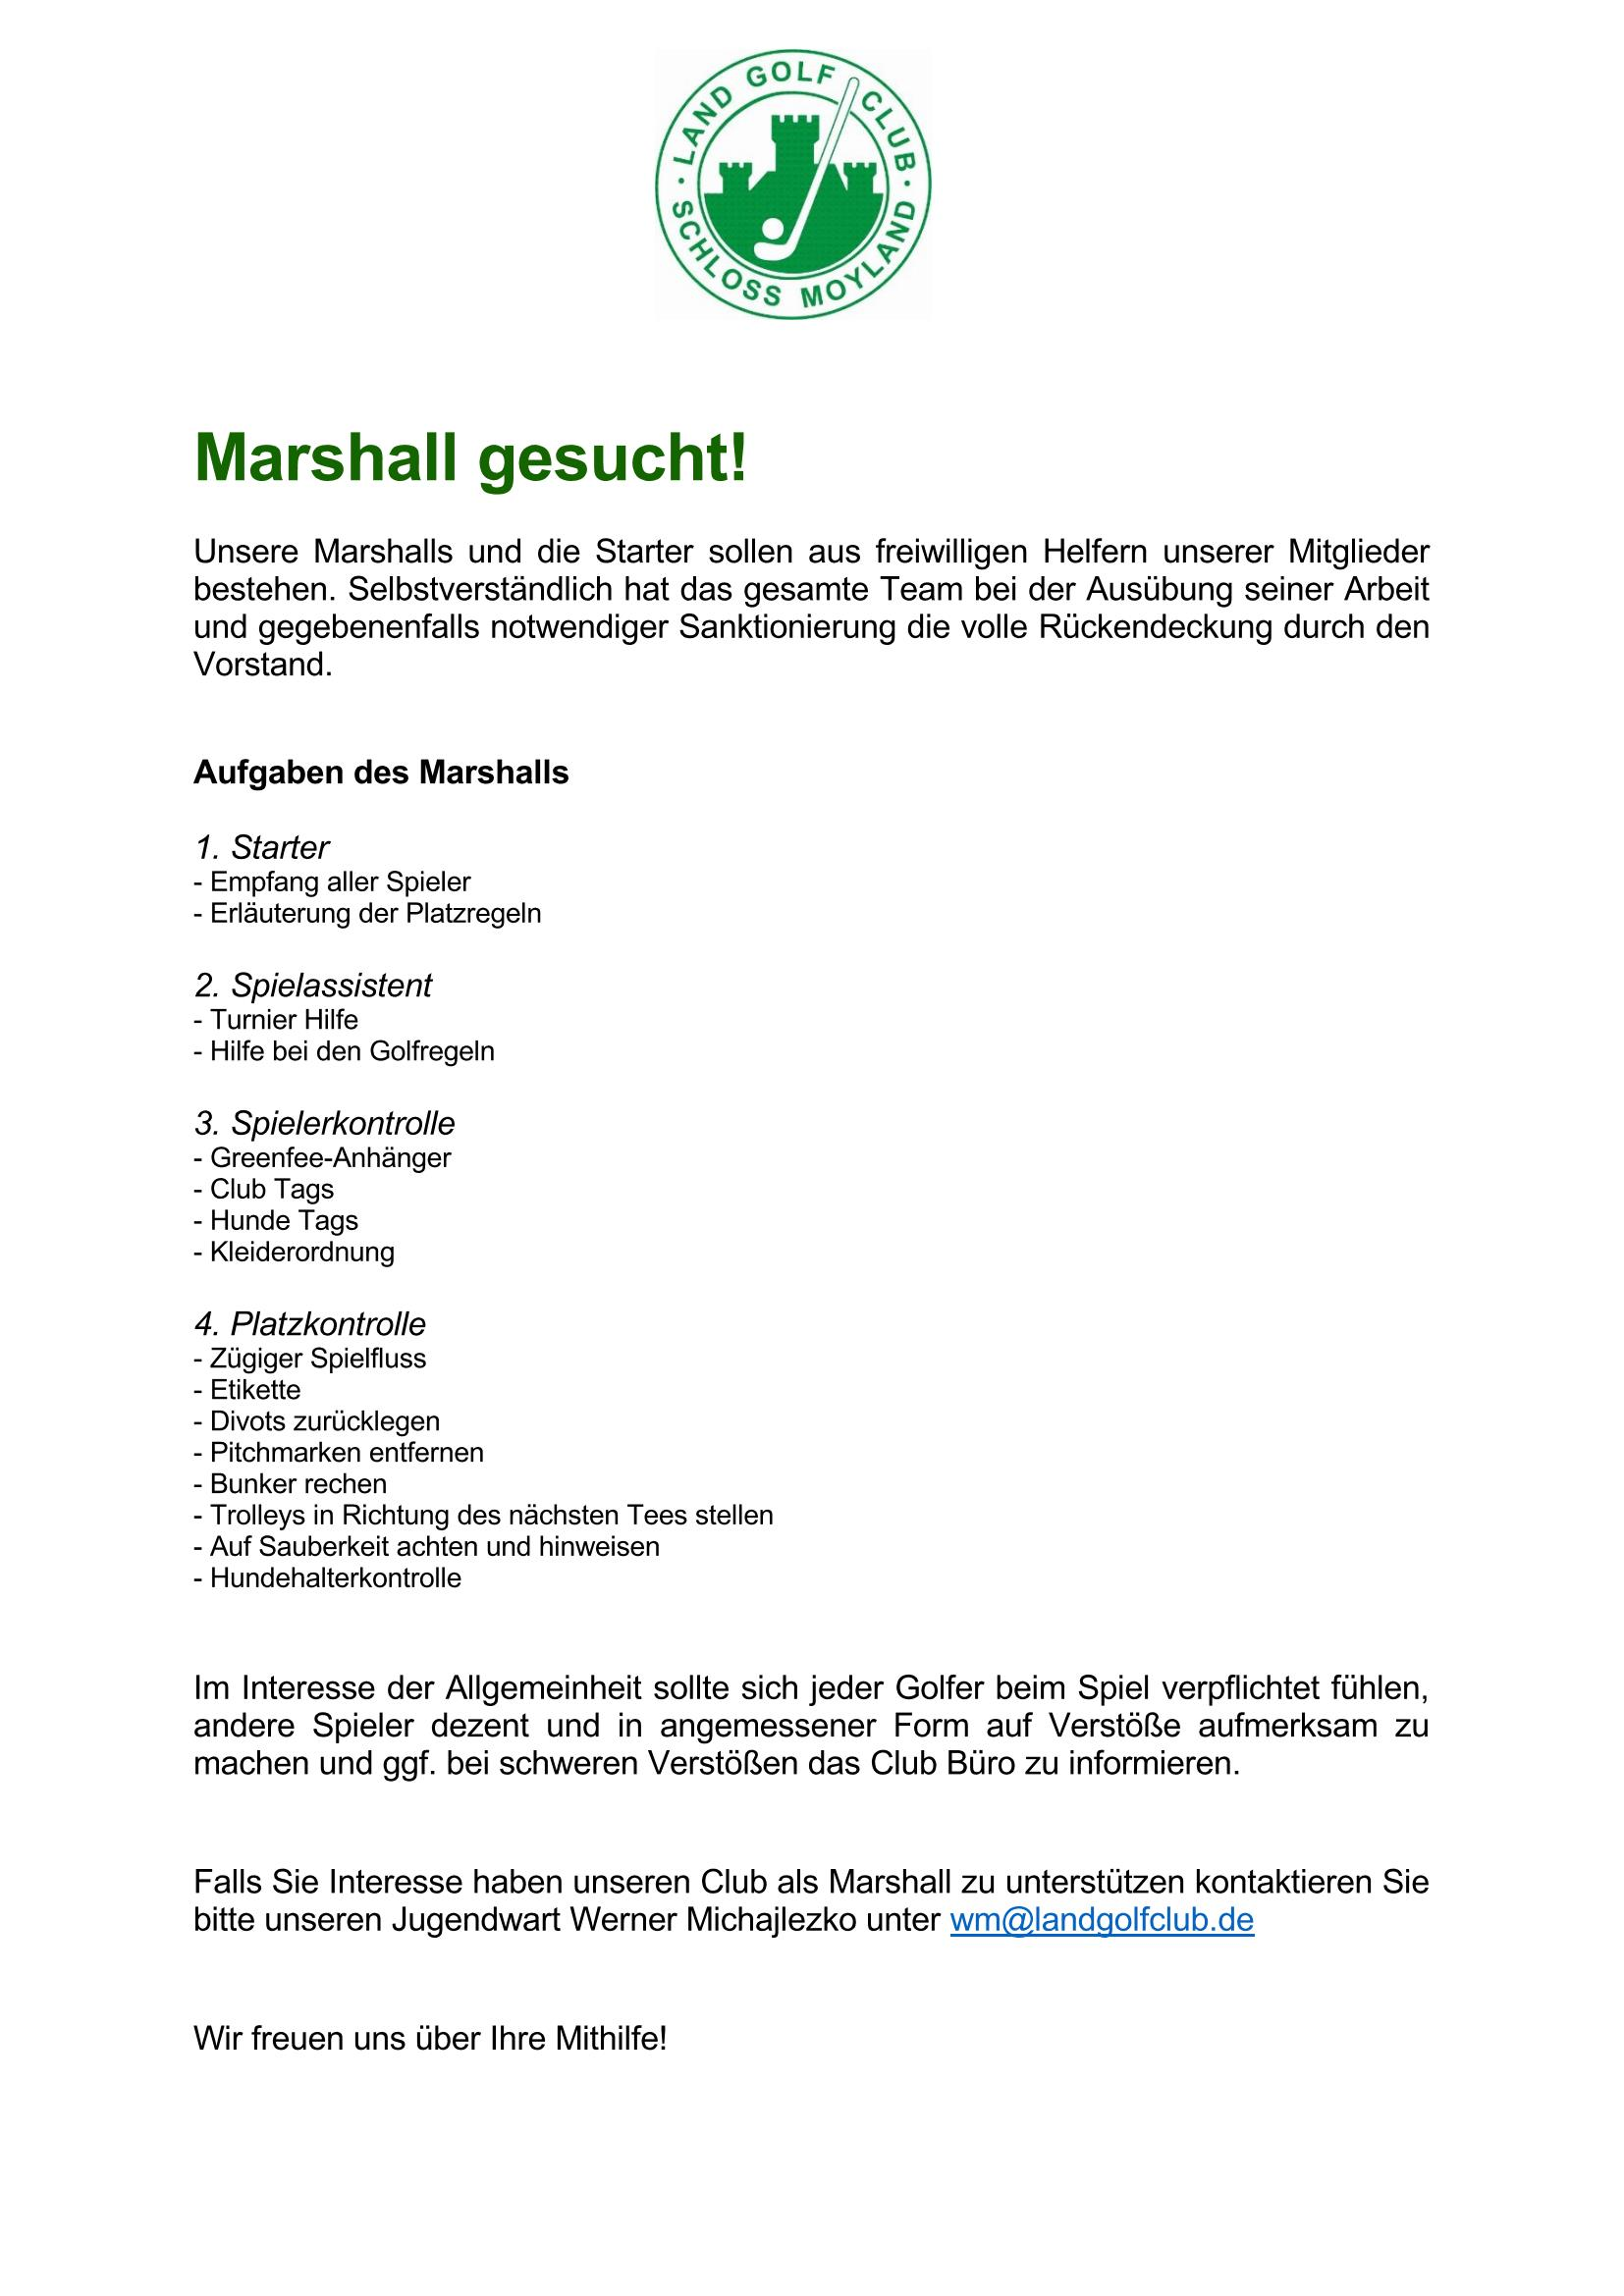 Marshall gesucht Page 1